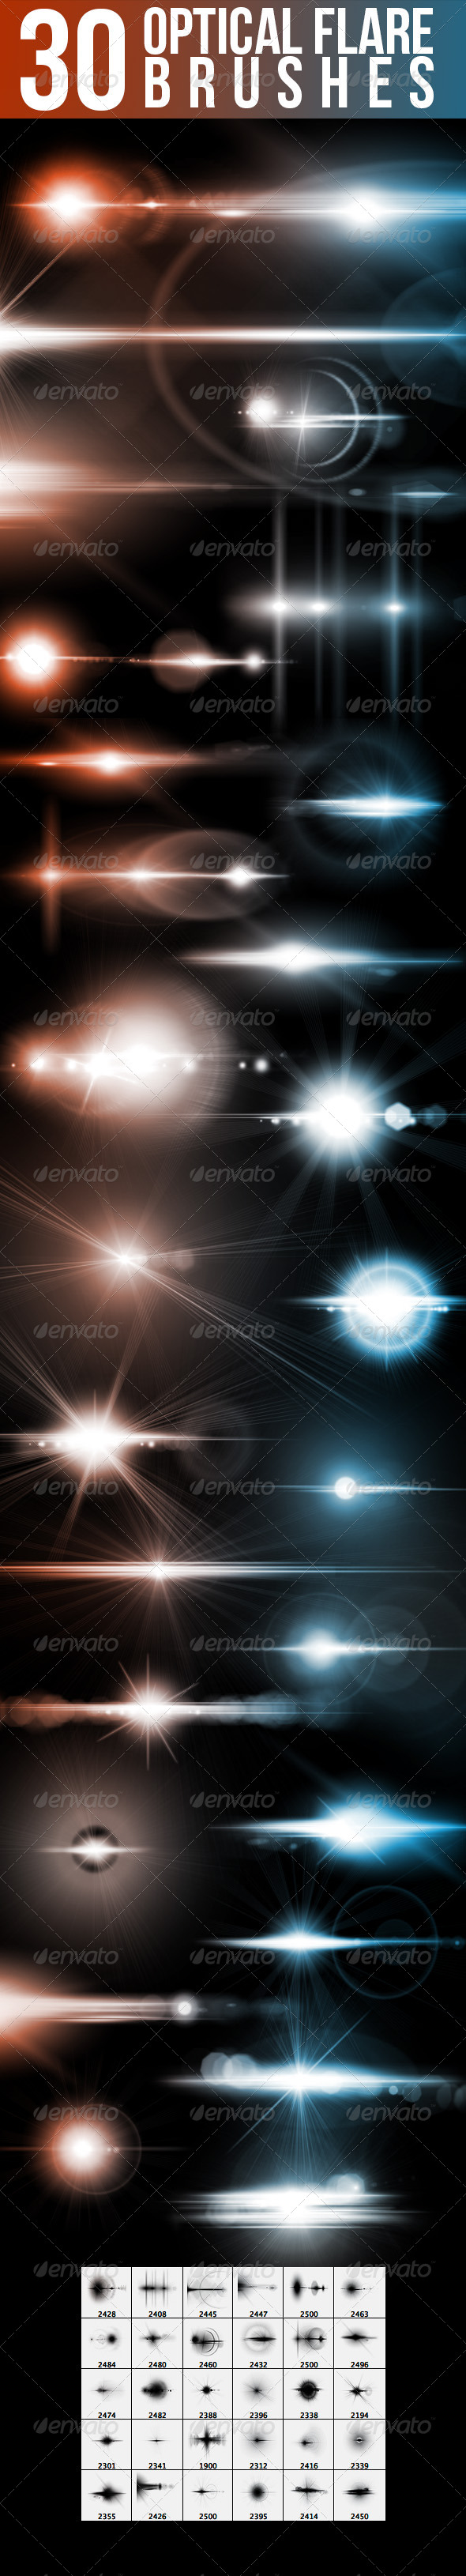 GraphicRiver 30 Optical Flare Brushes 5358850